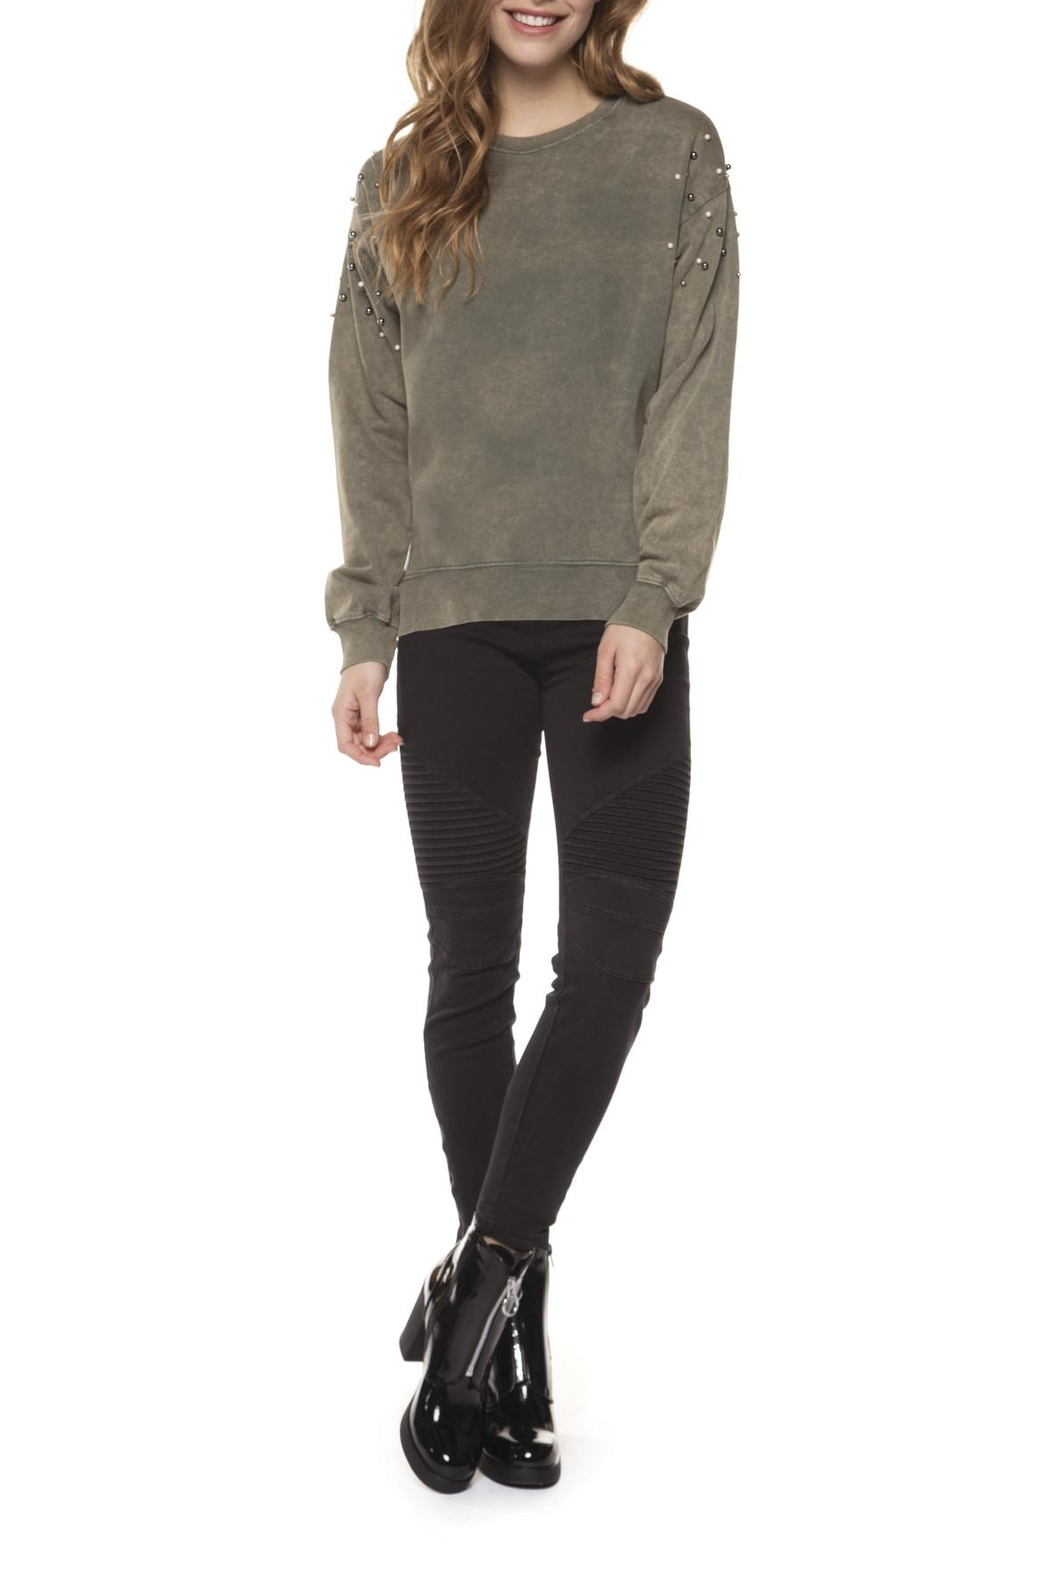 Dex Pearl Studded Sweatshirt - Front Cropped Image